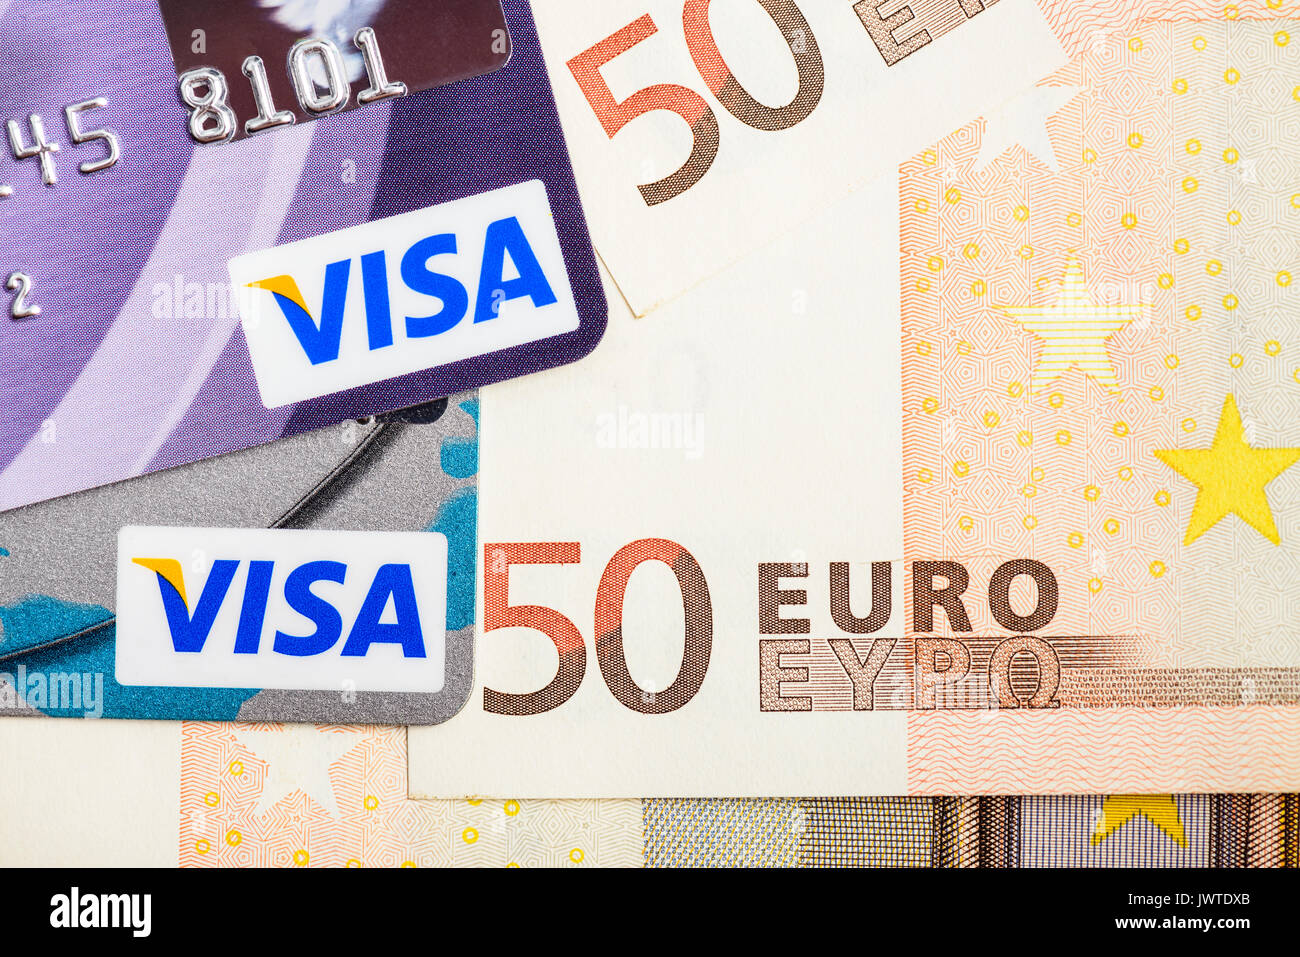 Moscowi, Russia - August 05, 2017: Visa credit cards over Euro currency banknotes - Stock Image